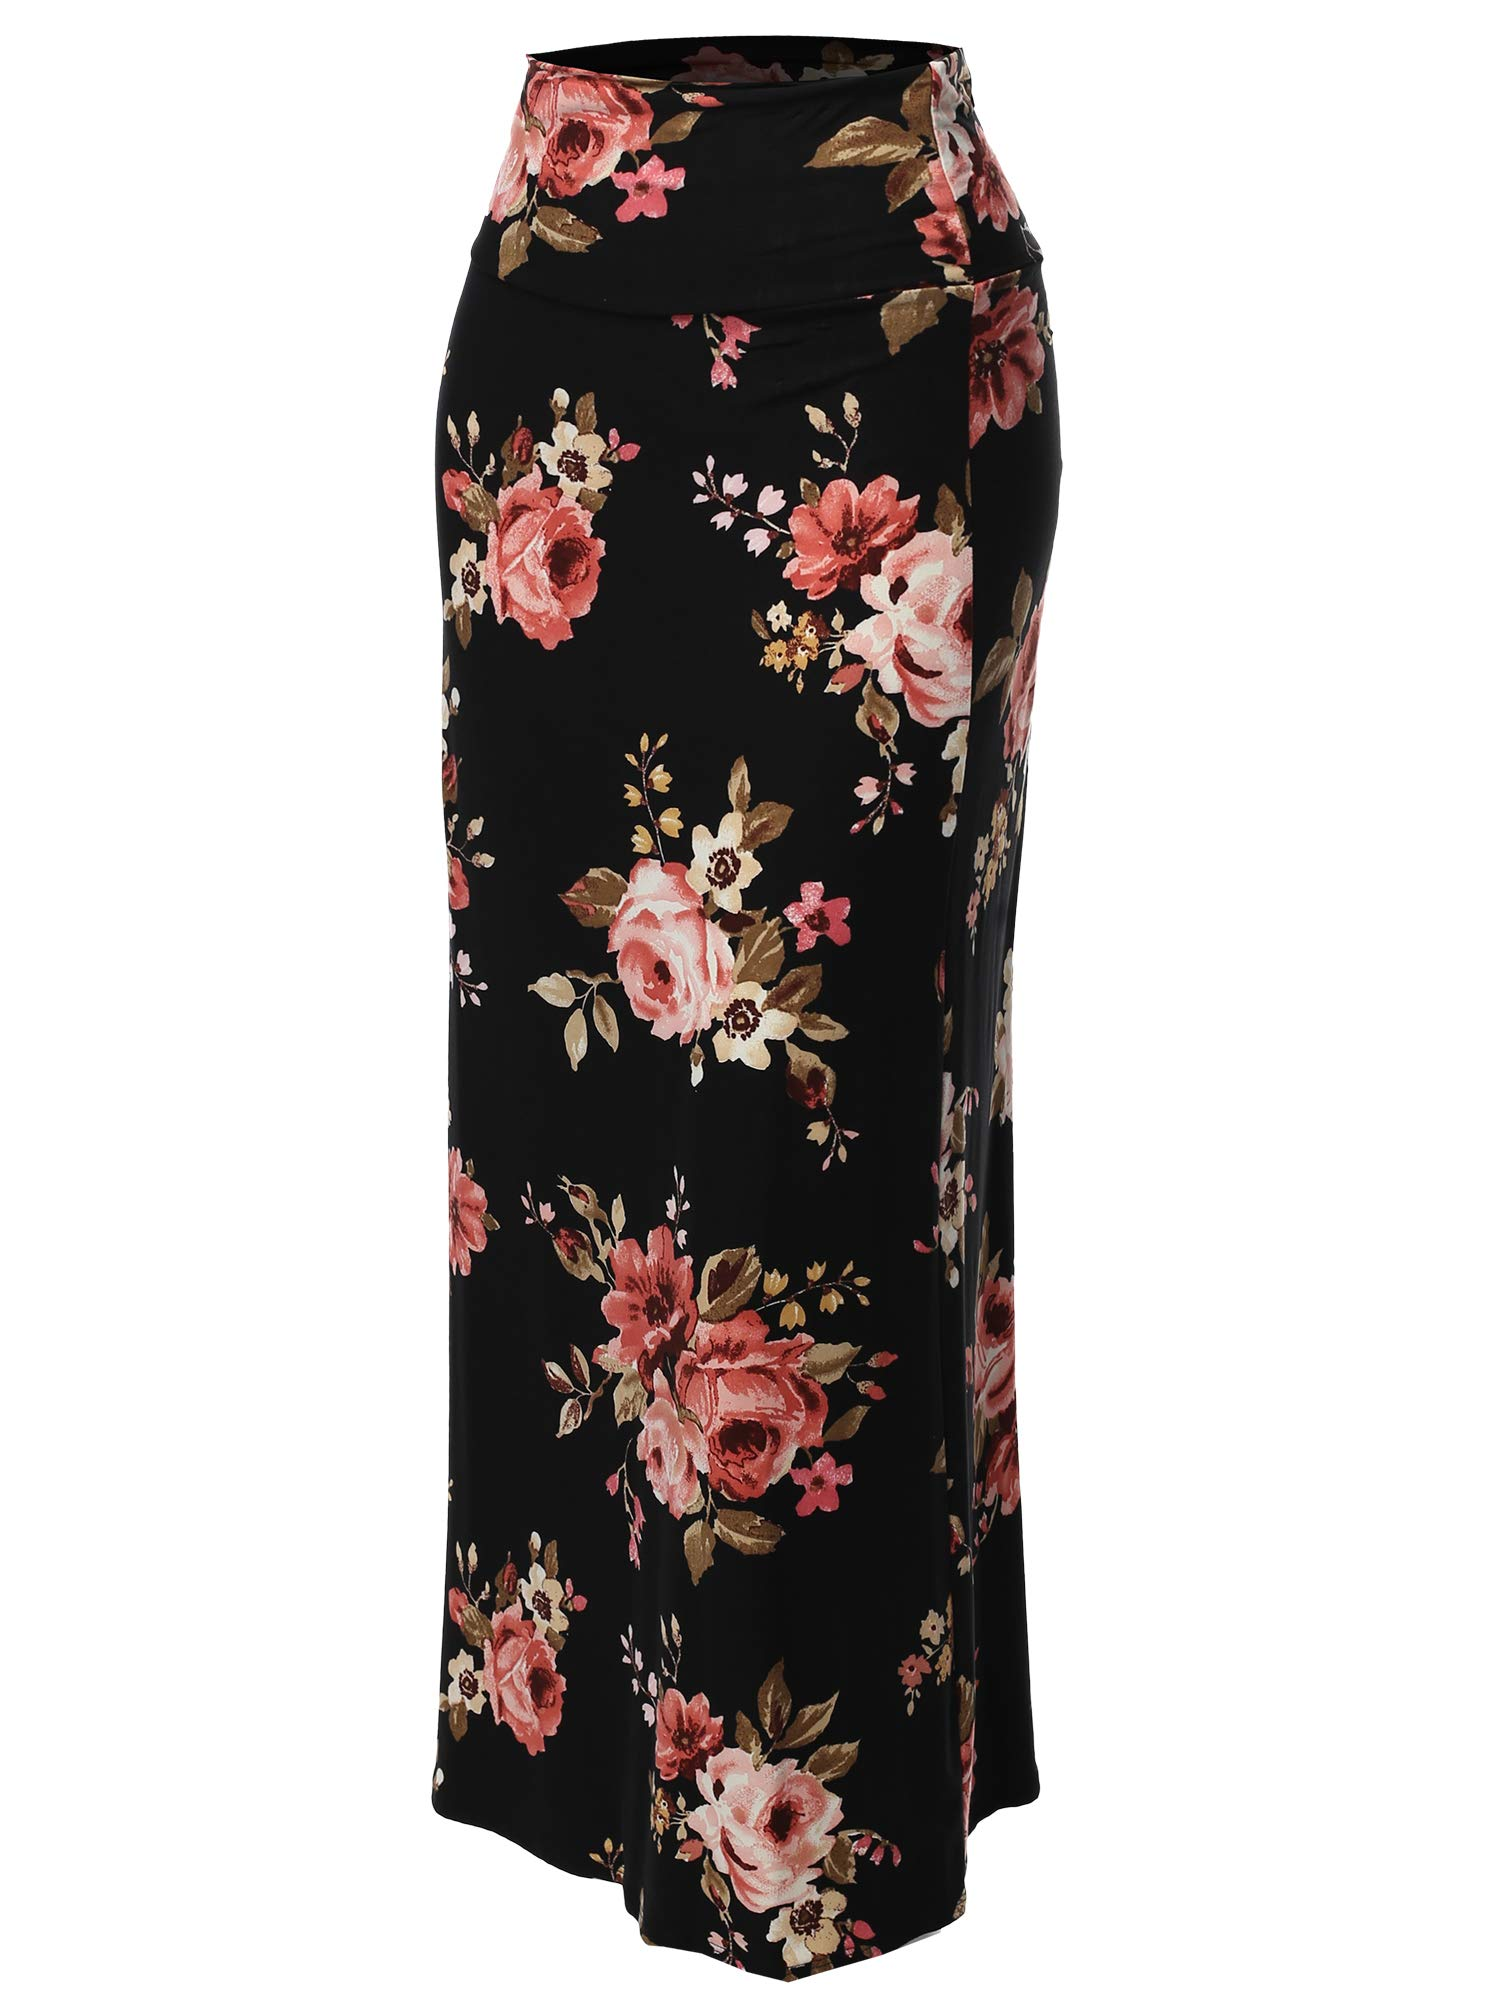 Stylish Fold Over Flare Long Maxi Skirt - Made in USA Black Pink Floral 2XL